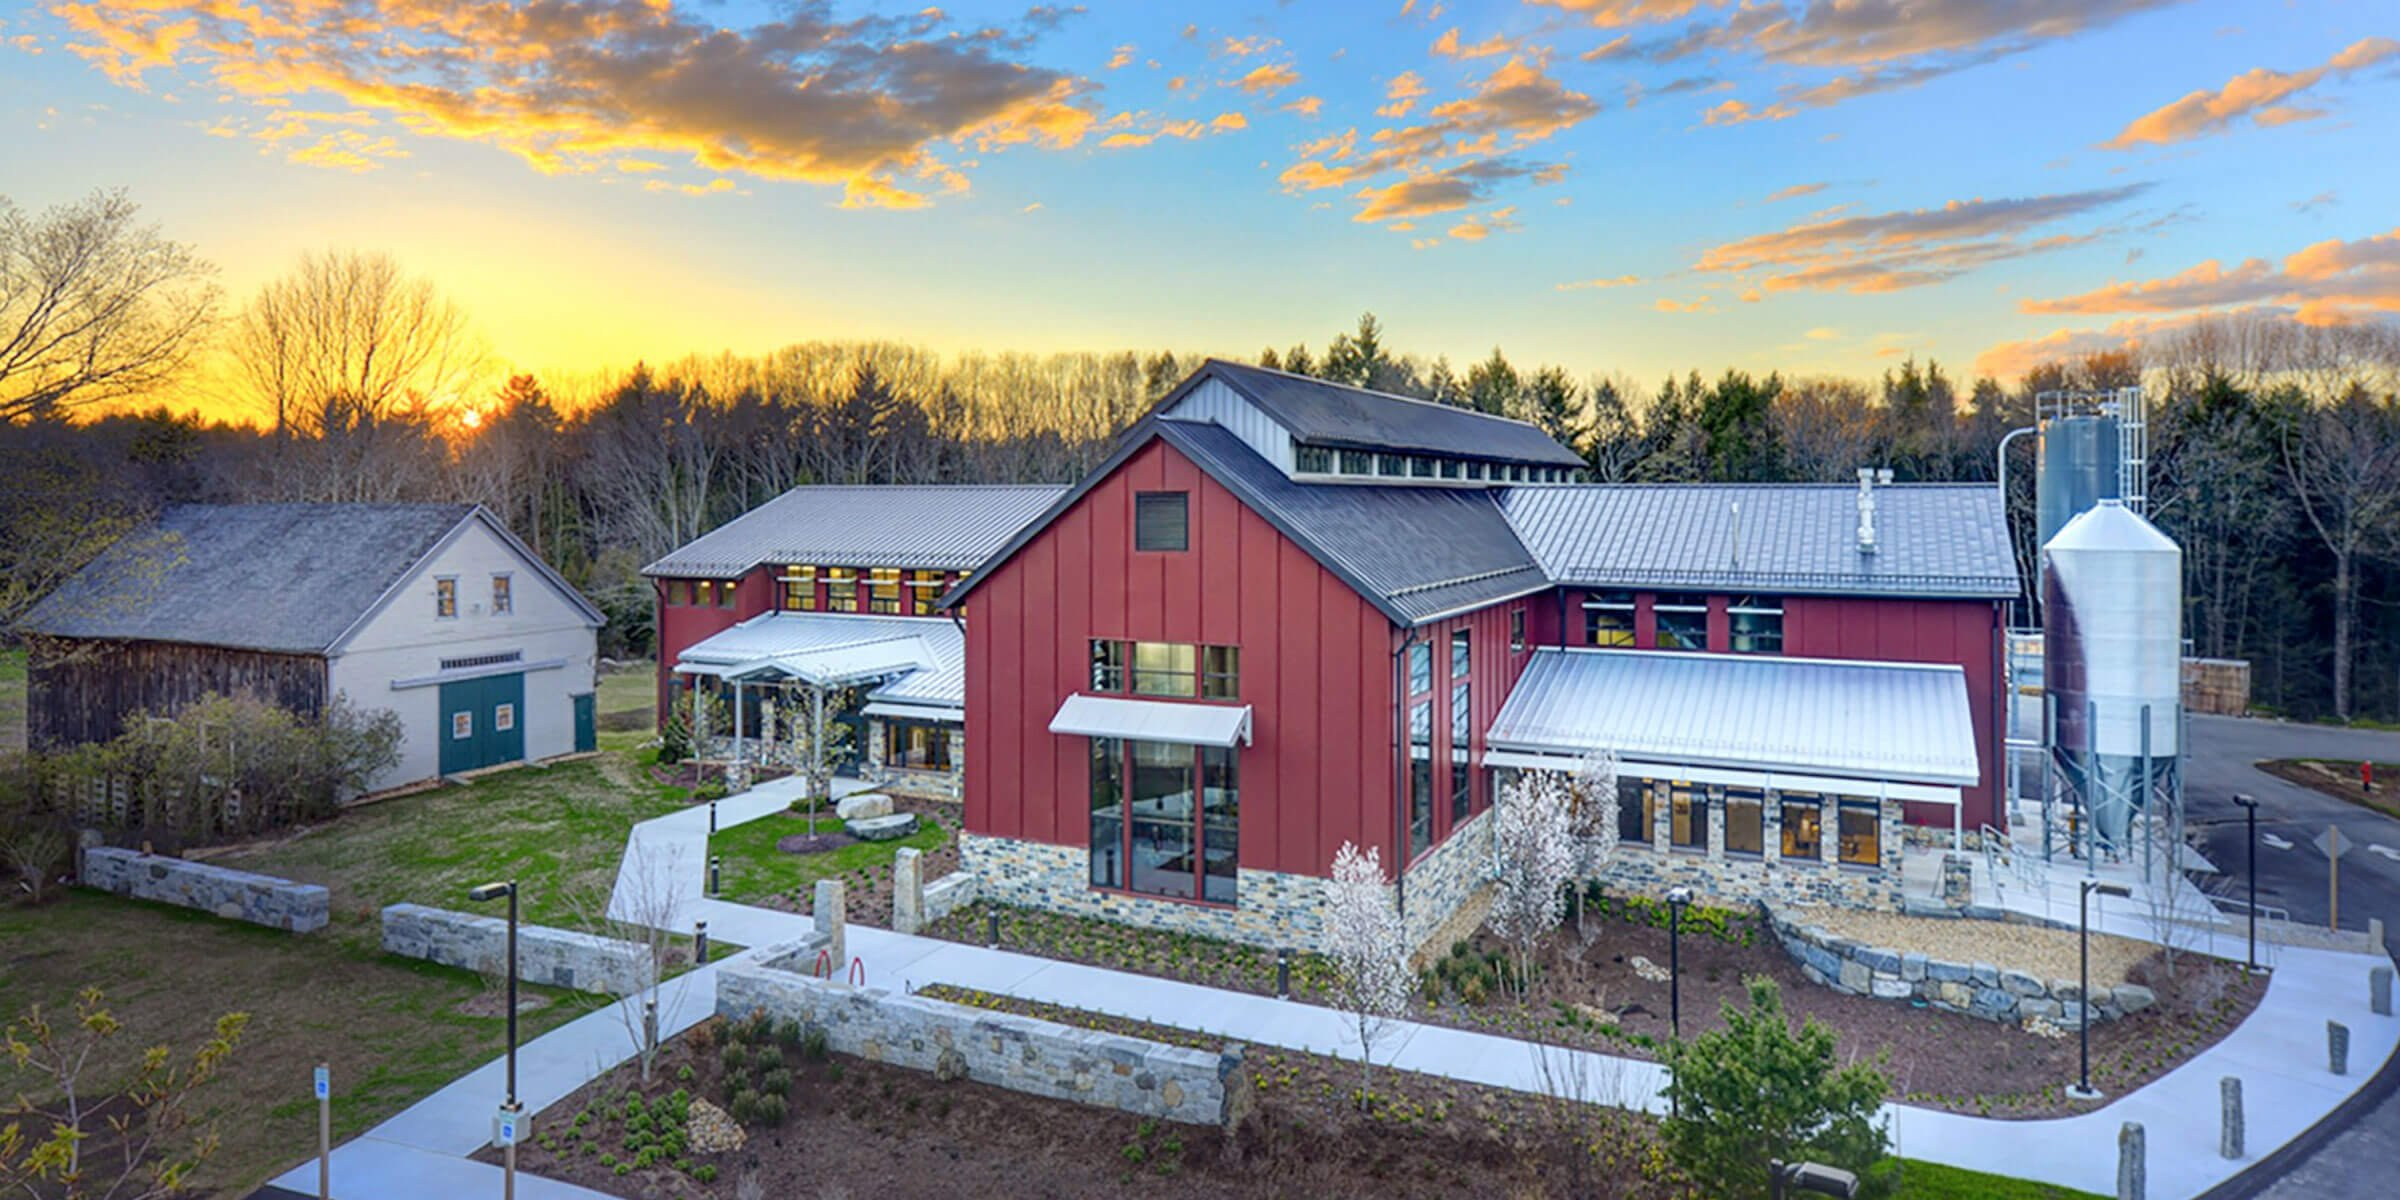 Smuttynose Brewing Company and its historic Towle Farm are being put up for auction on March 9